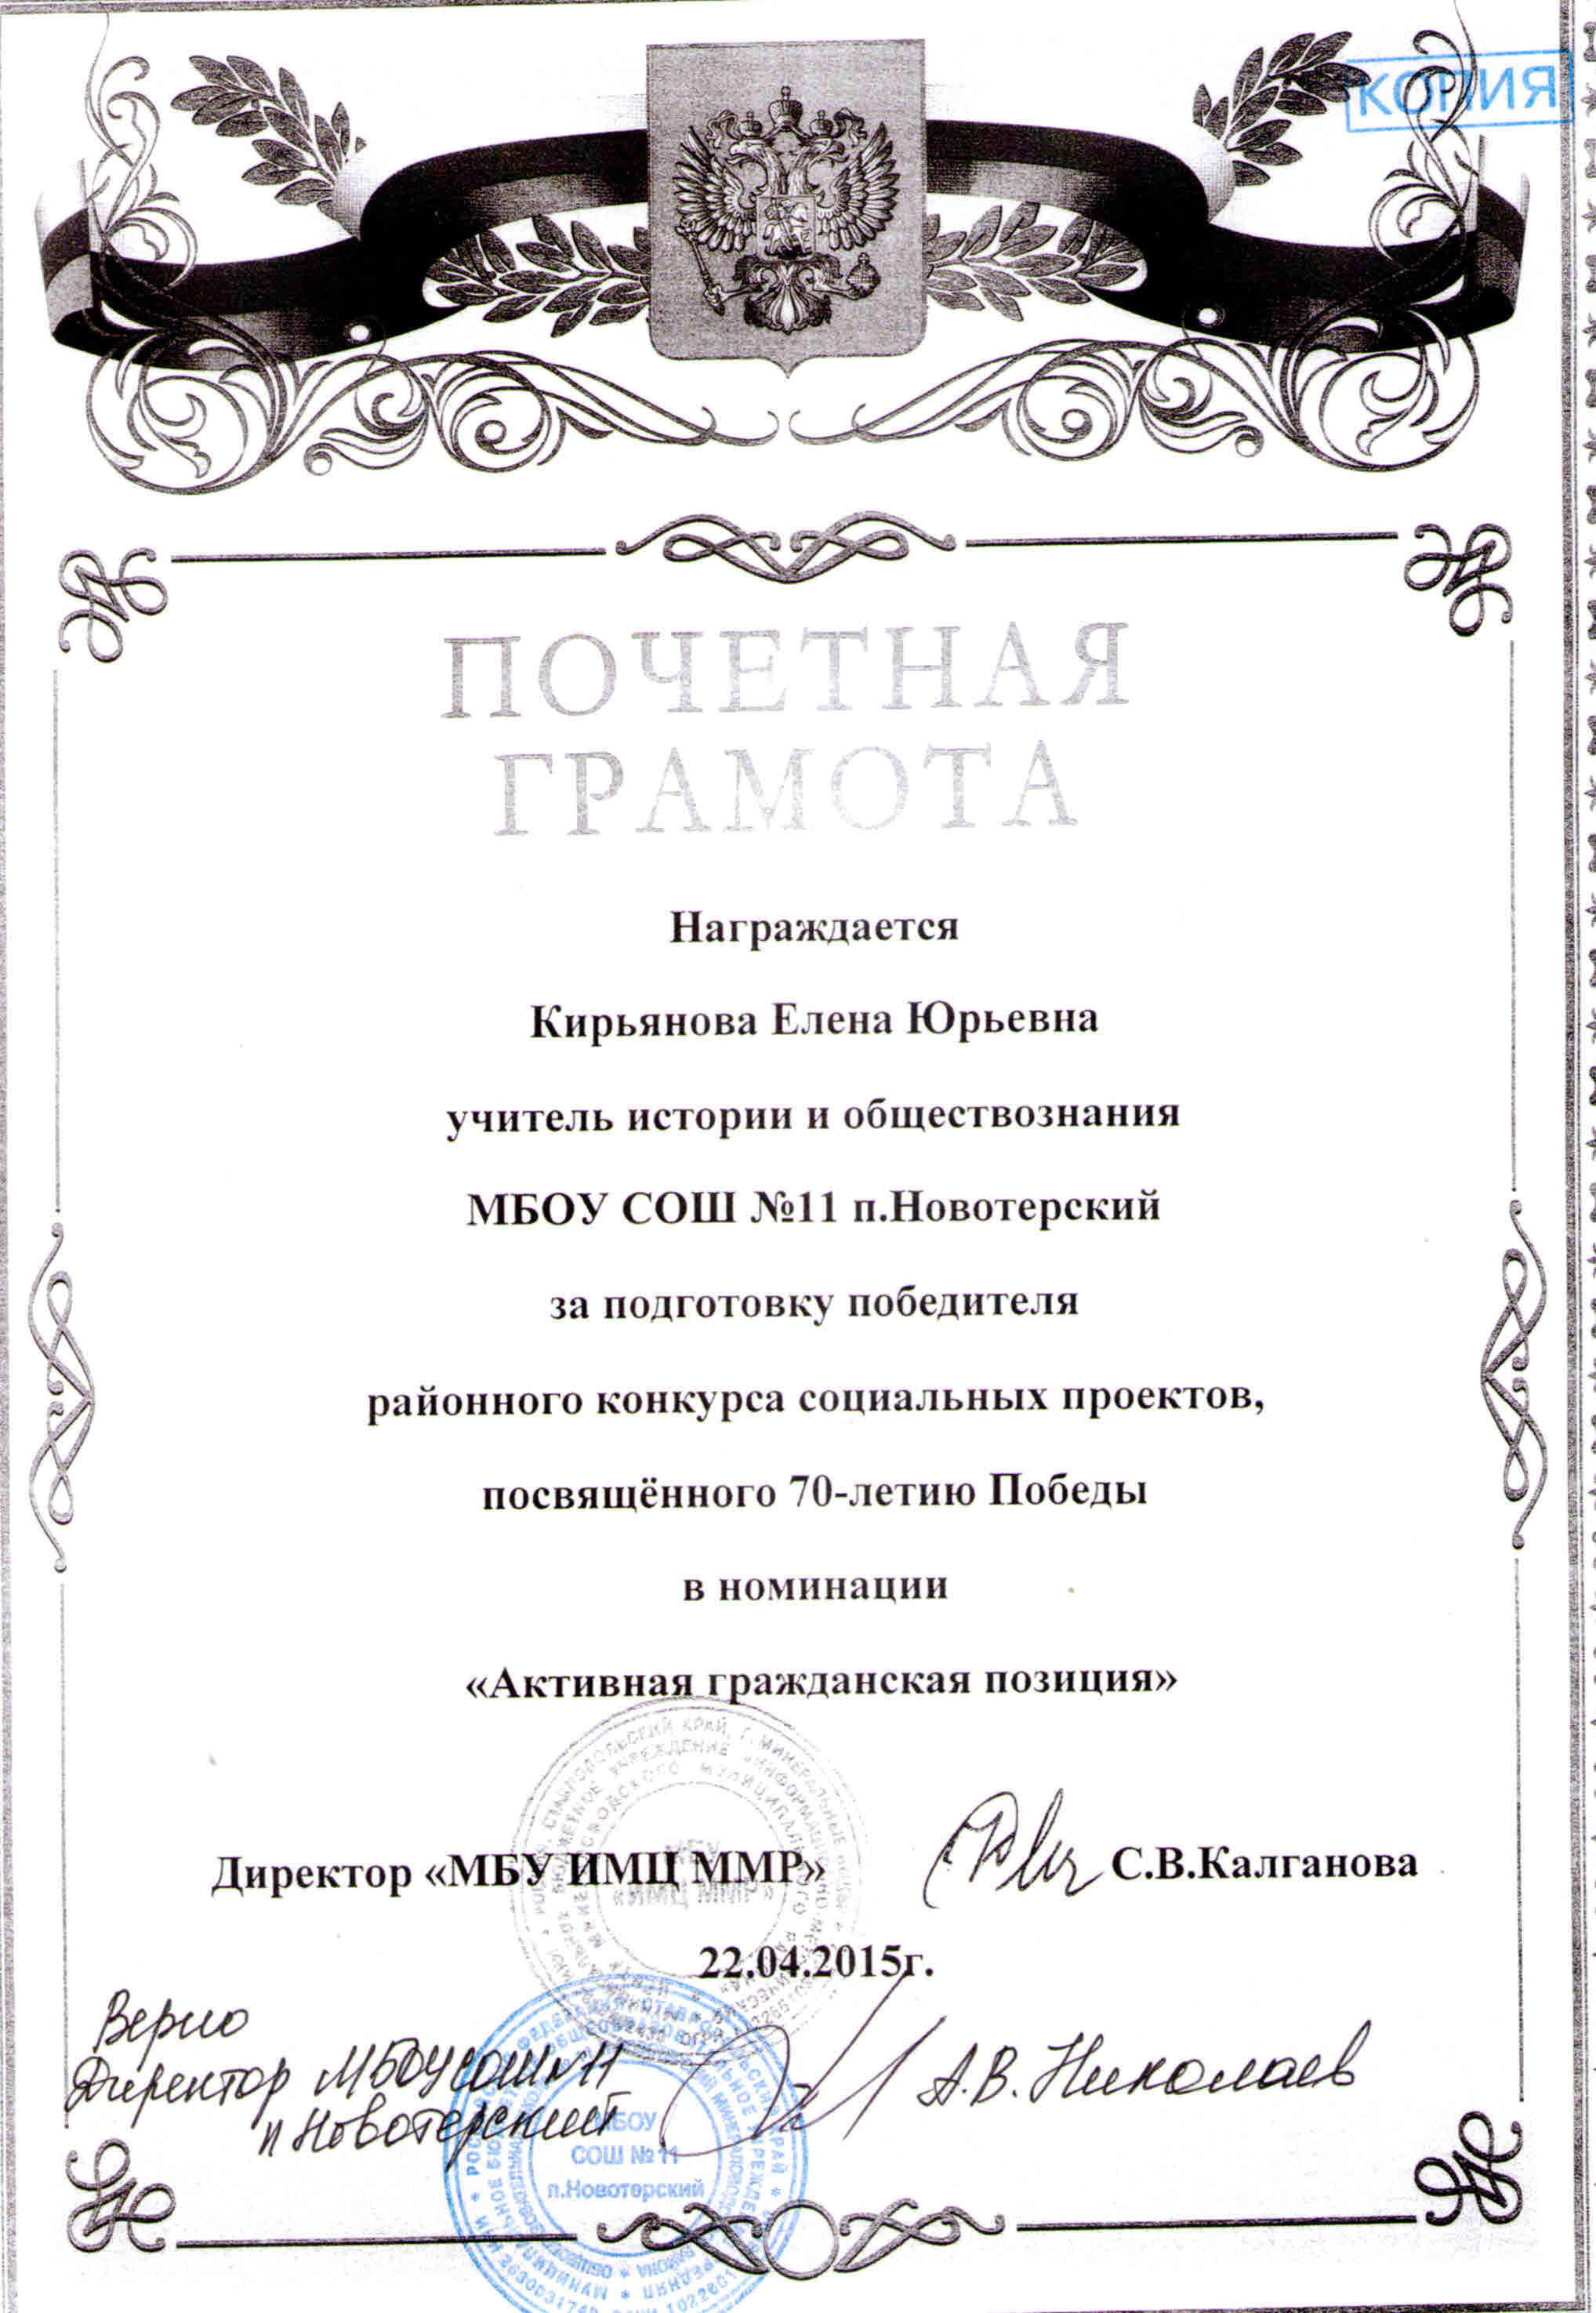 C:\Users\Сергей\Desktop\Document_9.jpg